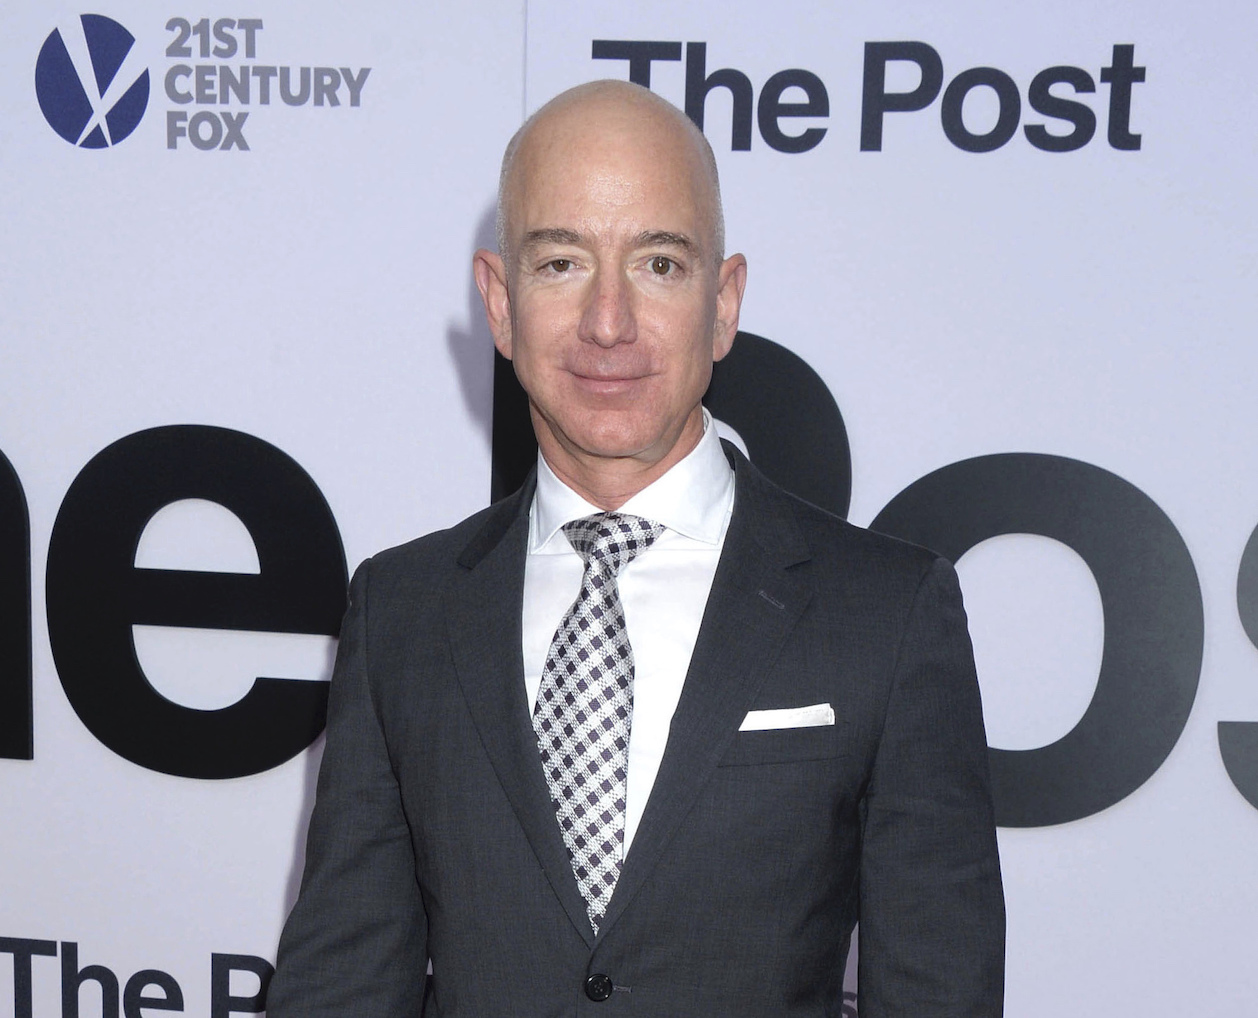 In the wake of President Biden's $2.3 trillion infrastructure proposal, Amazon CEO Jeff Bezos publicly backed the Administration's efforts.